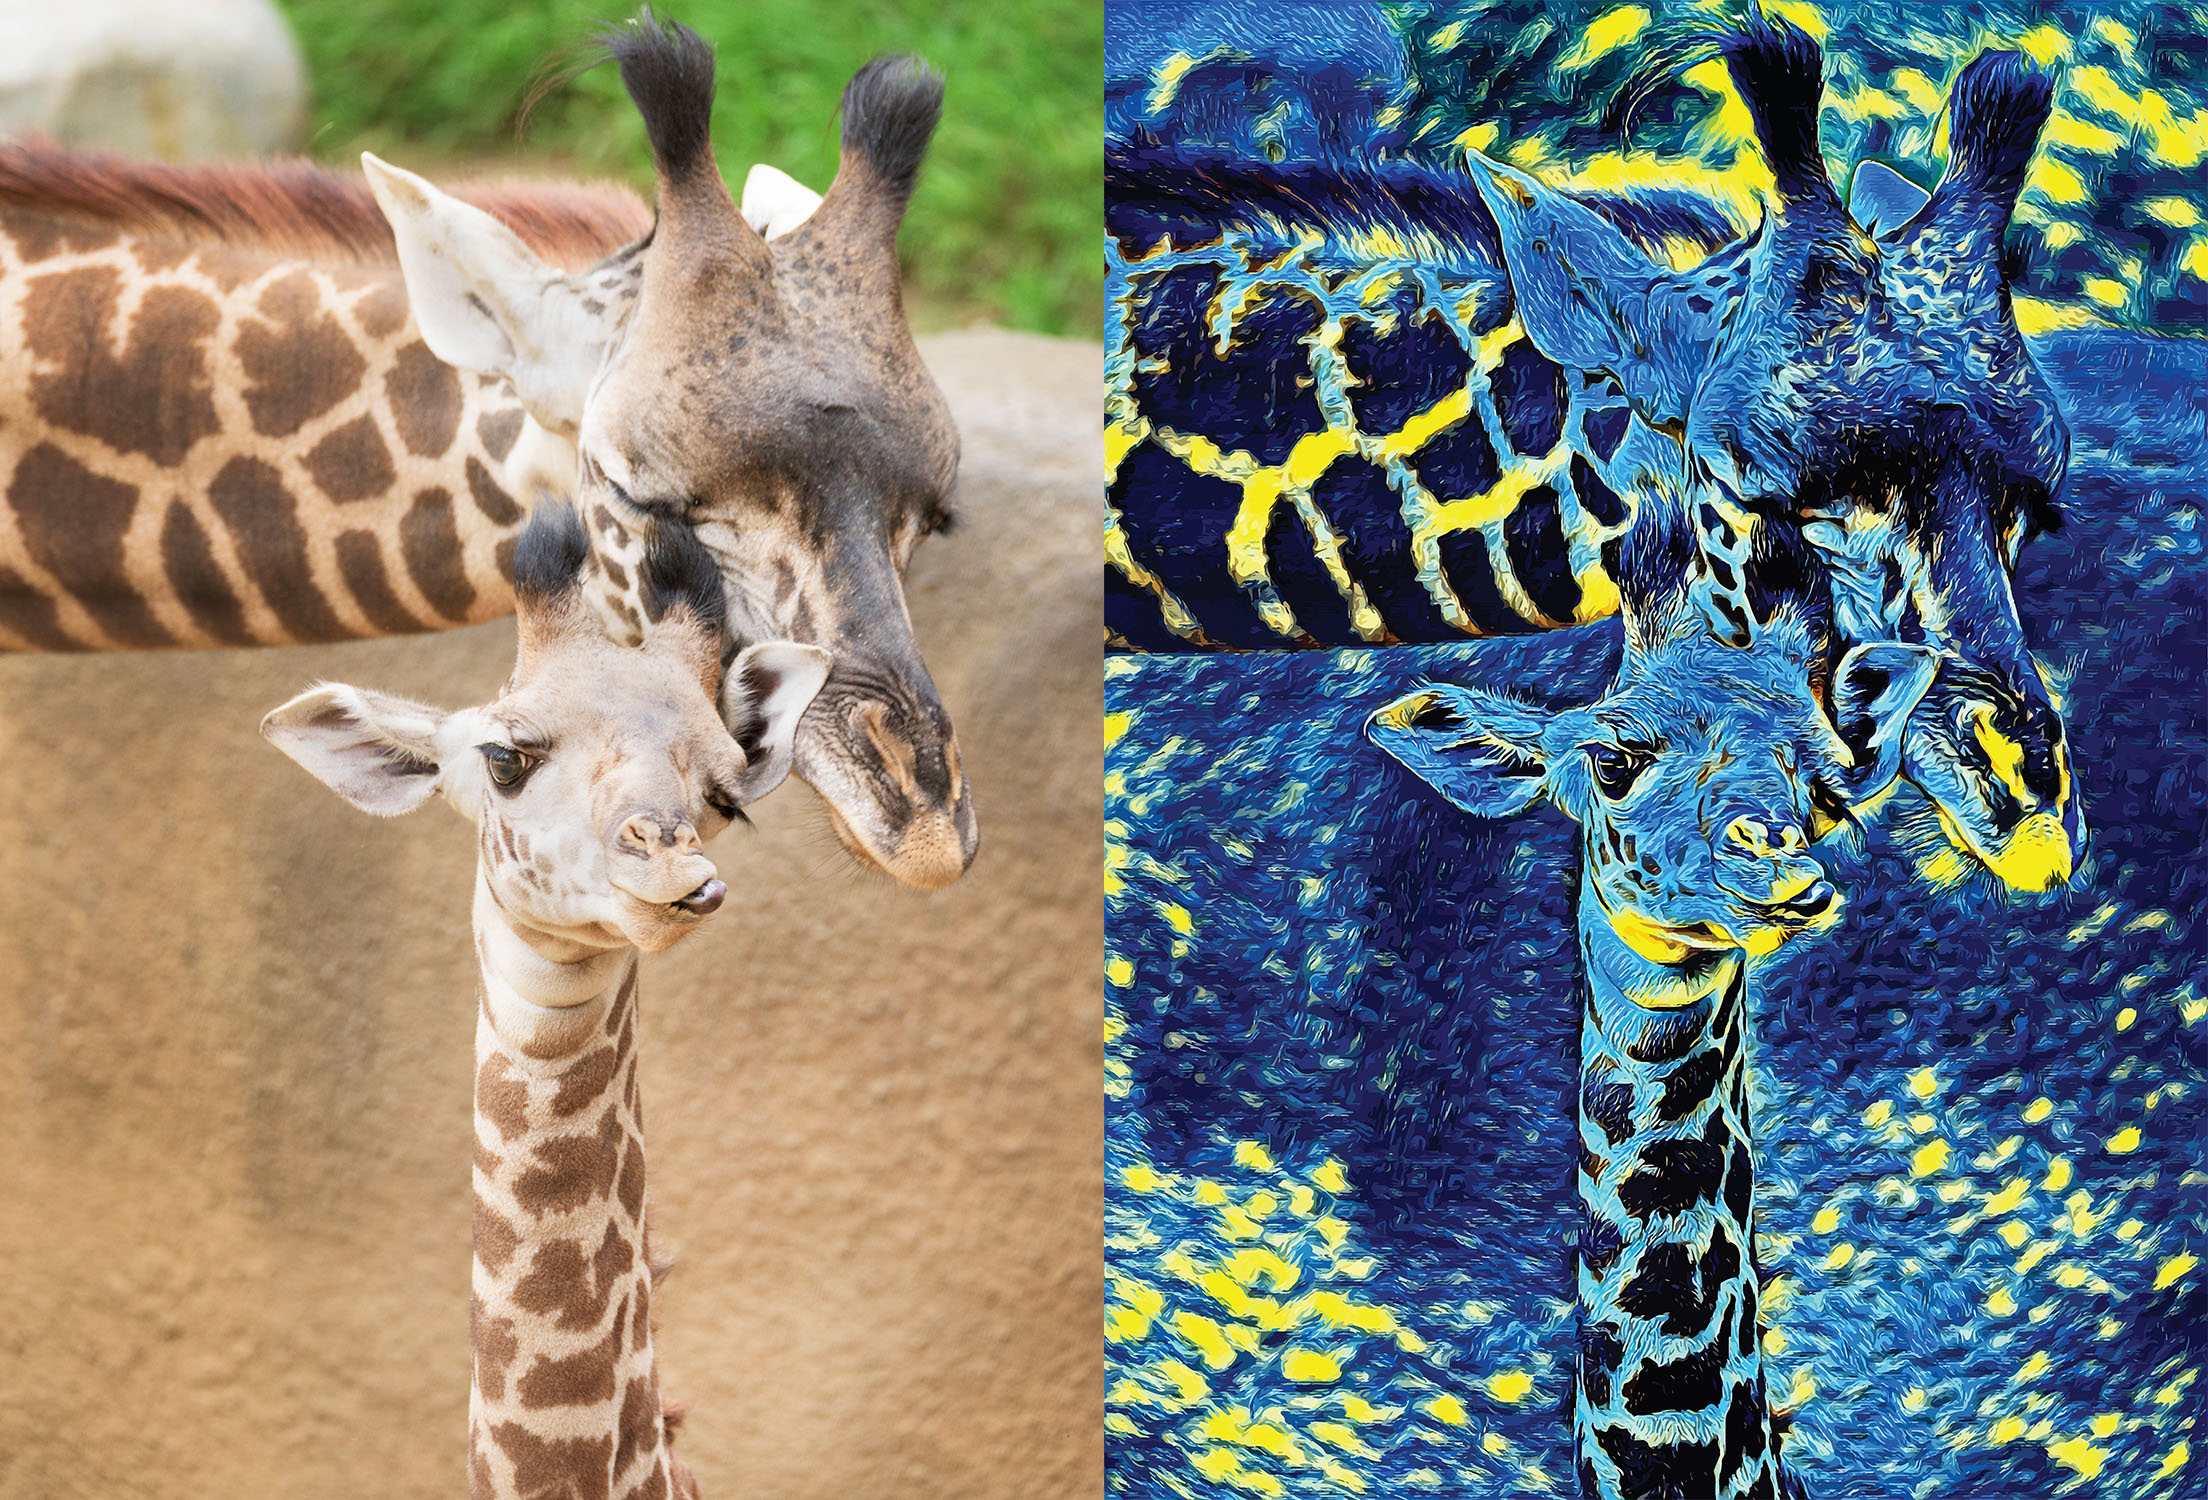 Before and after stylized image of a mama and baby giraffe